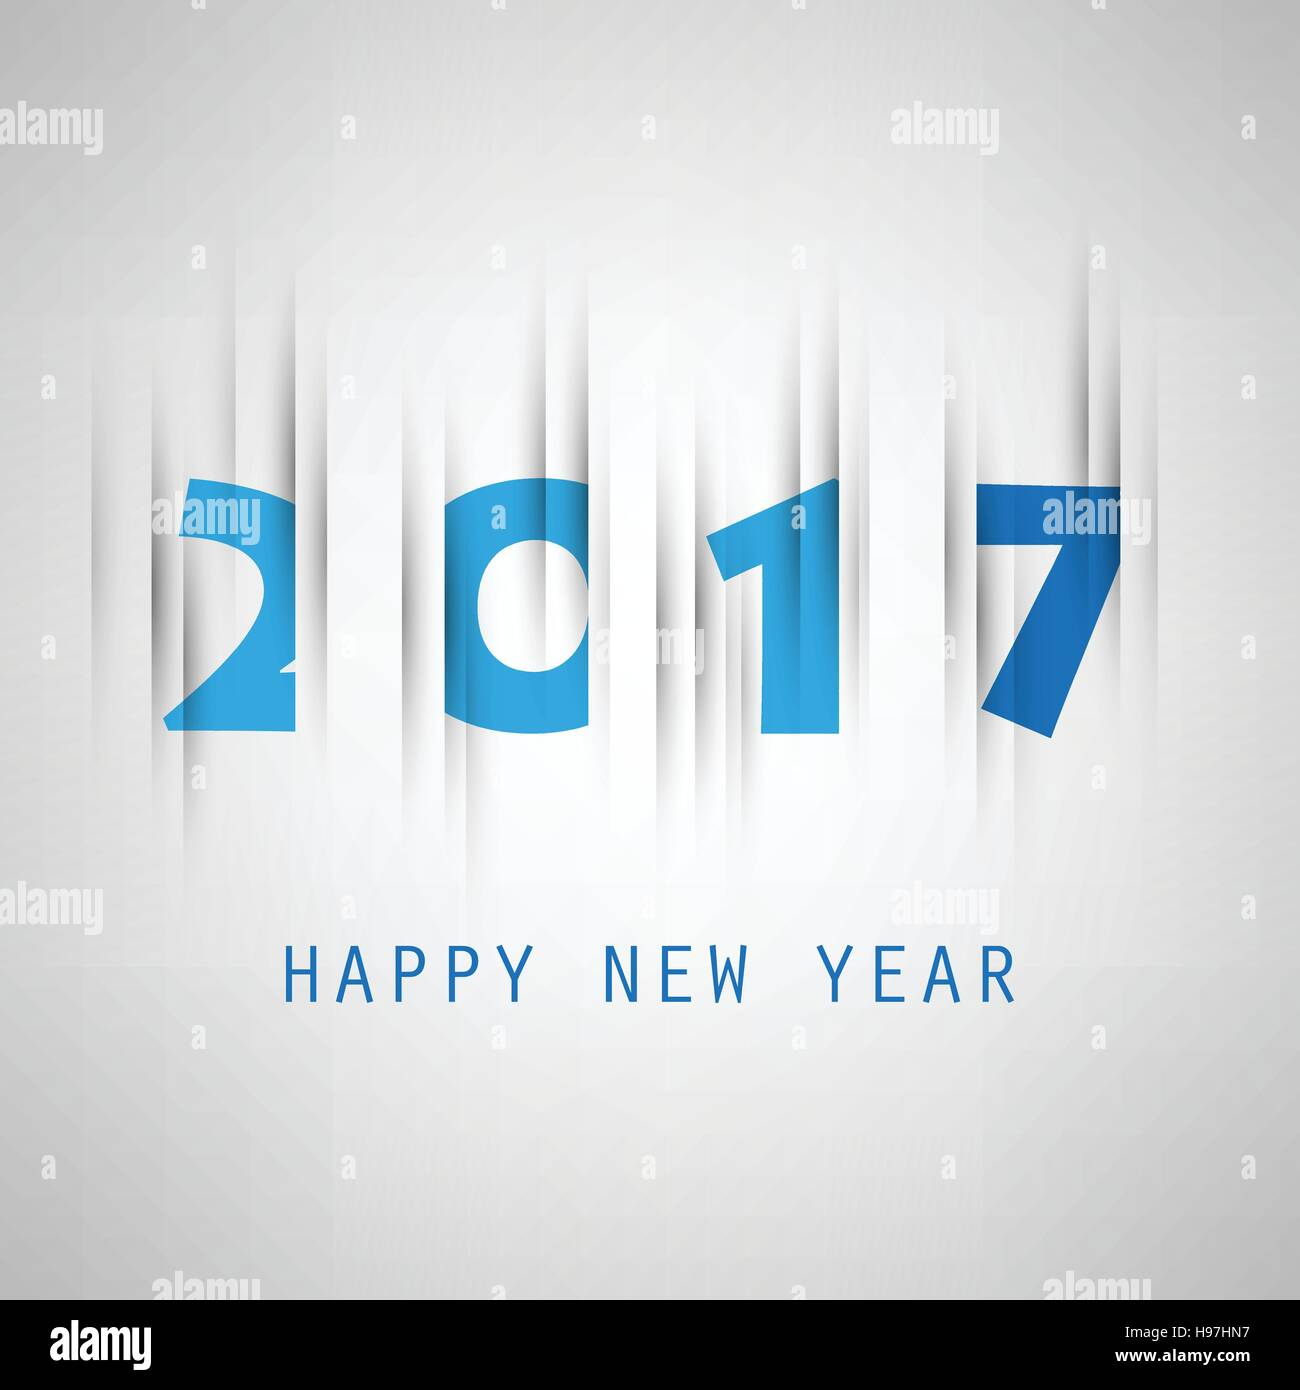 simple blue new year card cover or background design template 2017